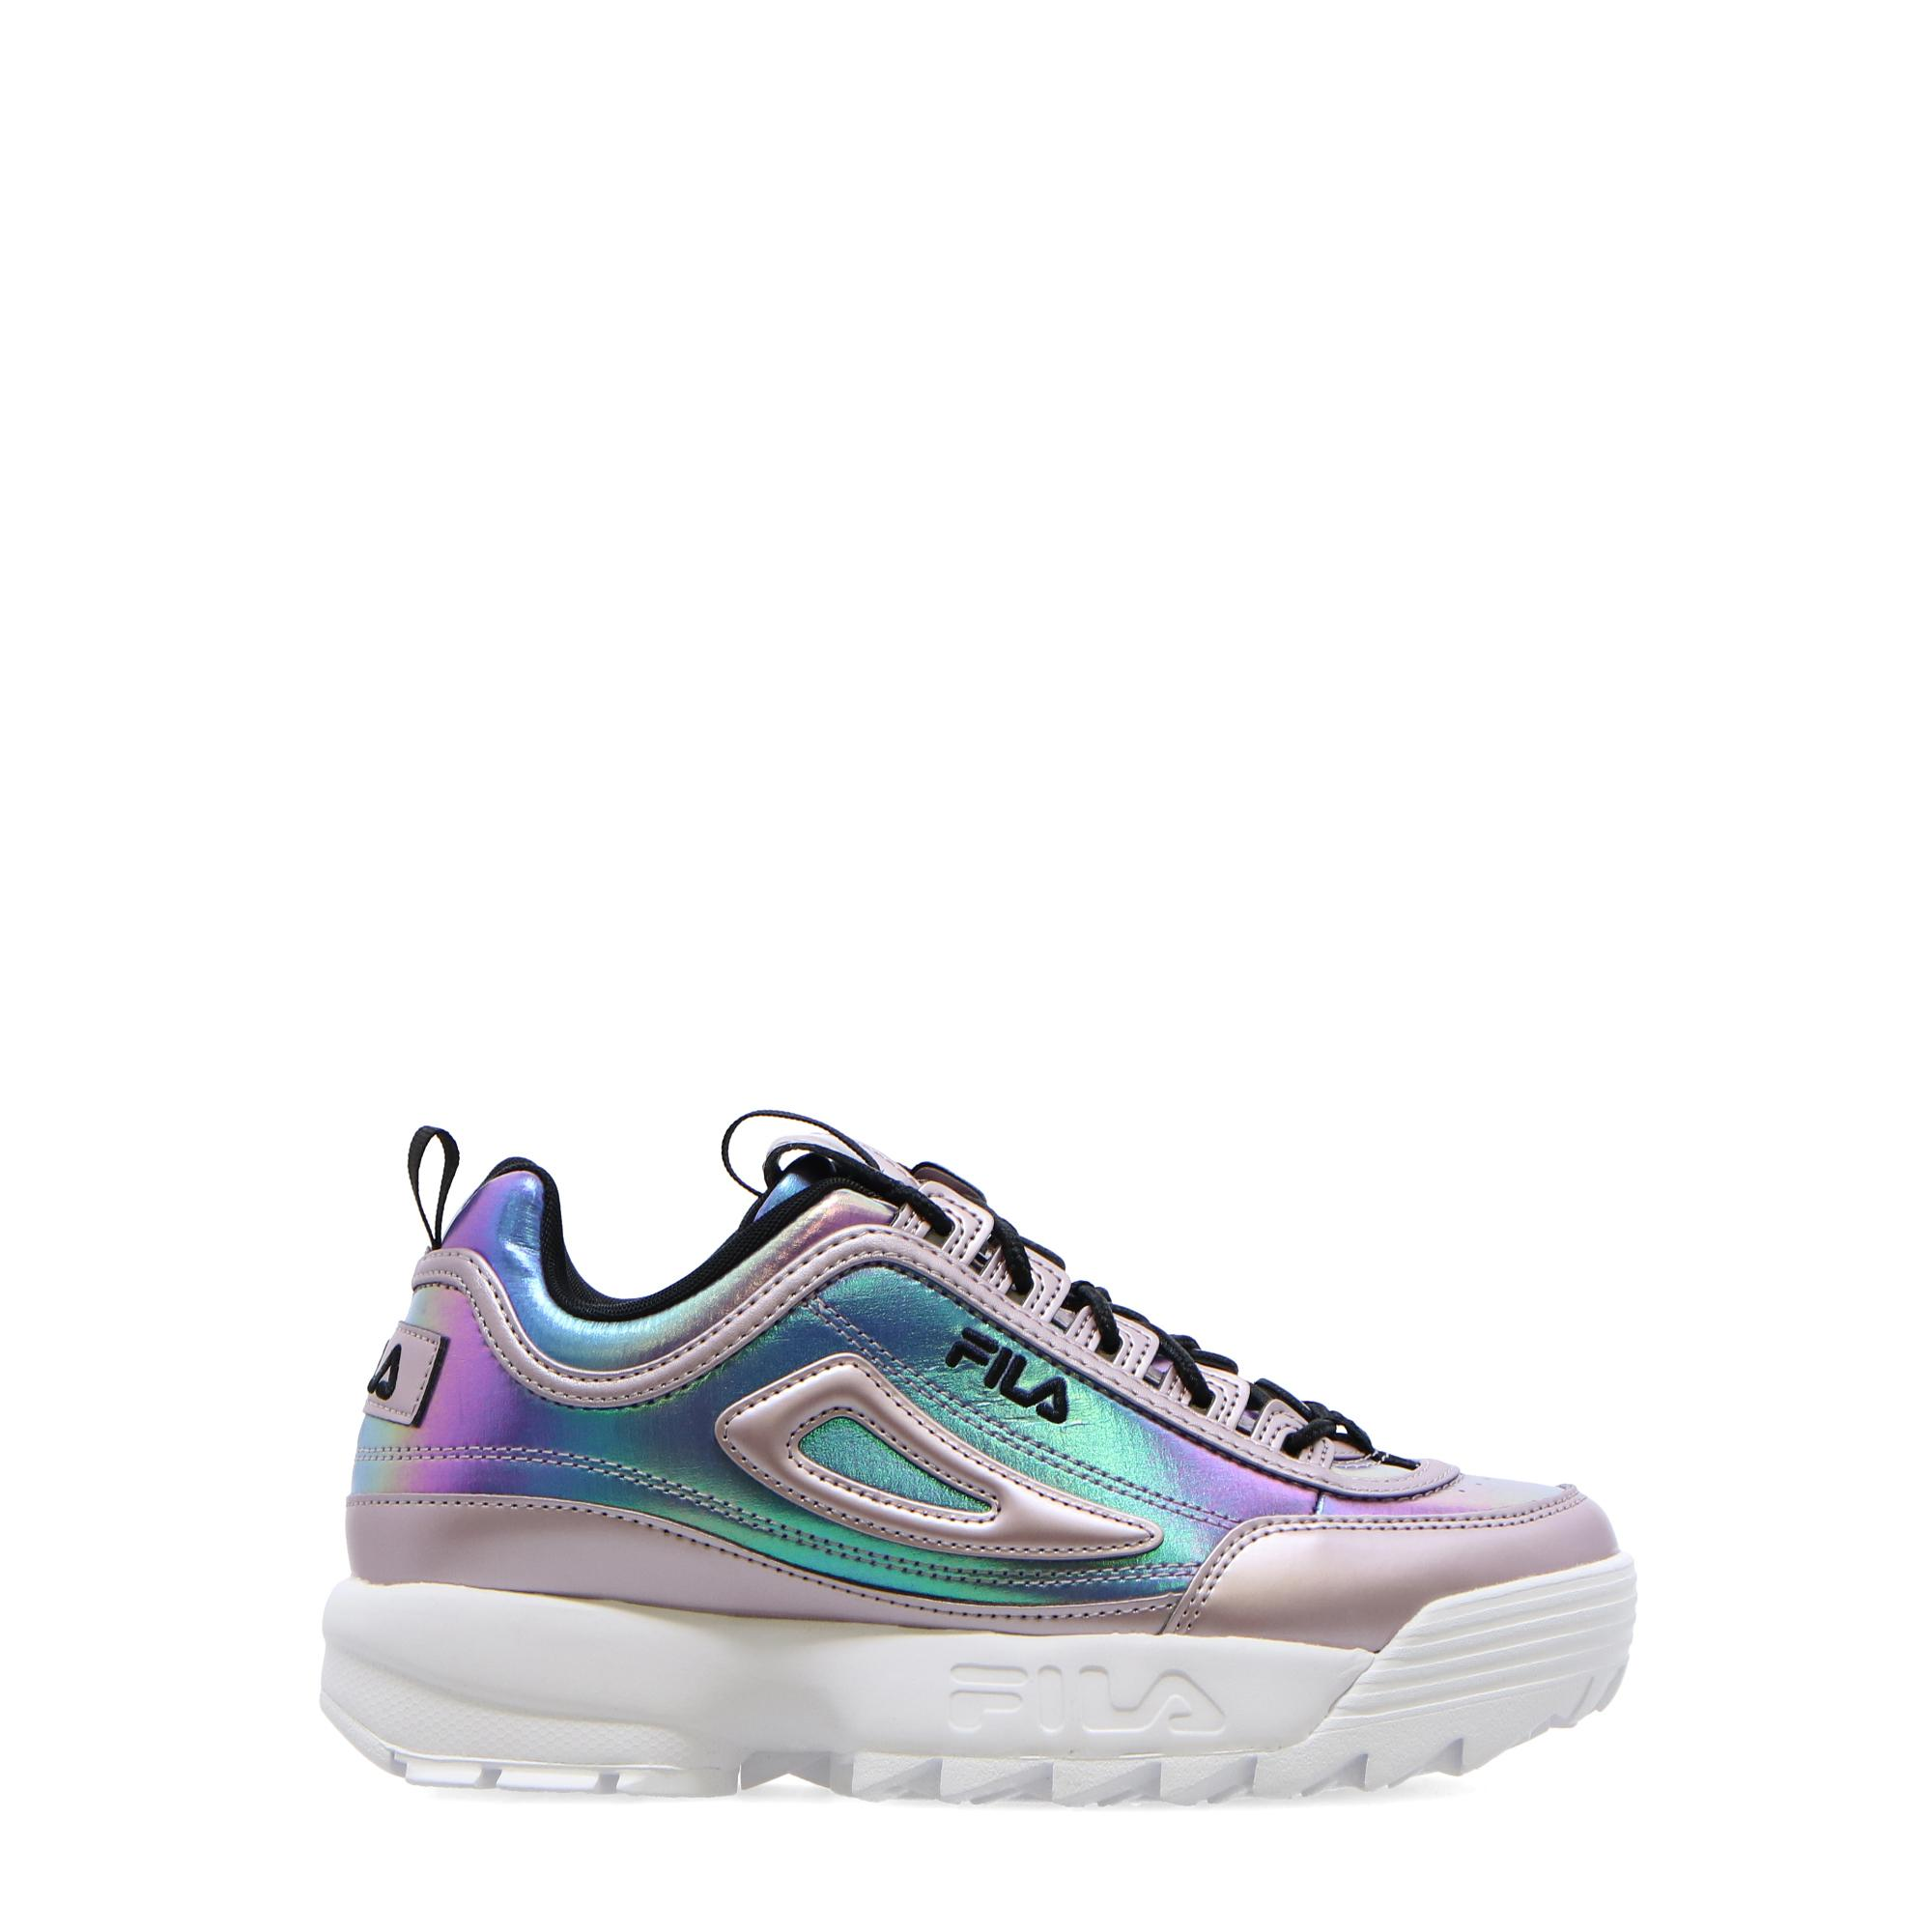 Fila Disruptor F Low Wmn Multi iridescent